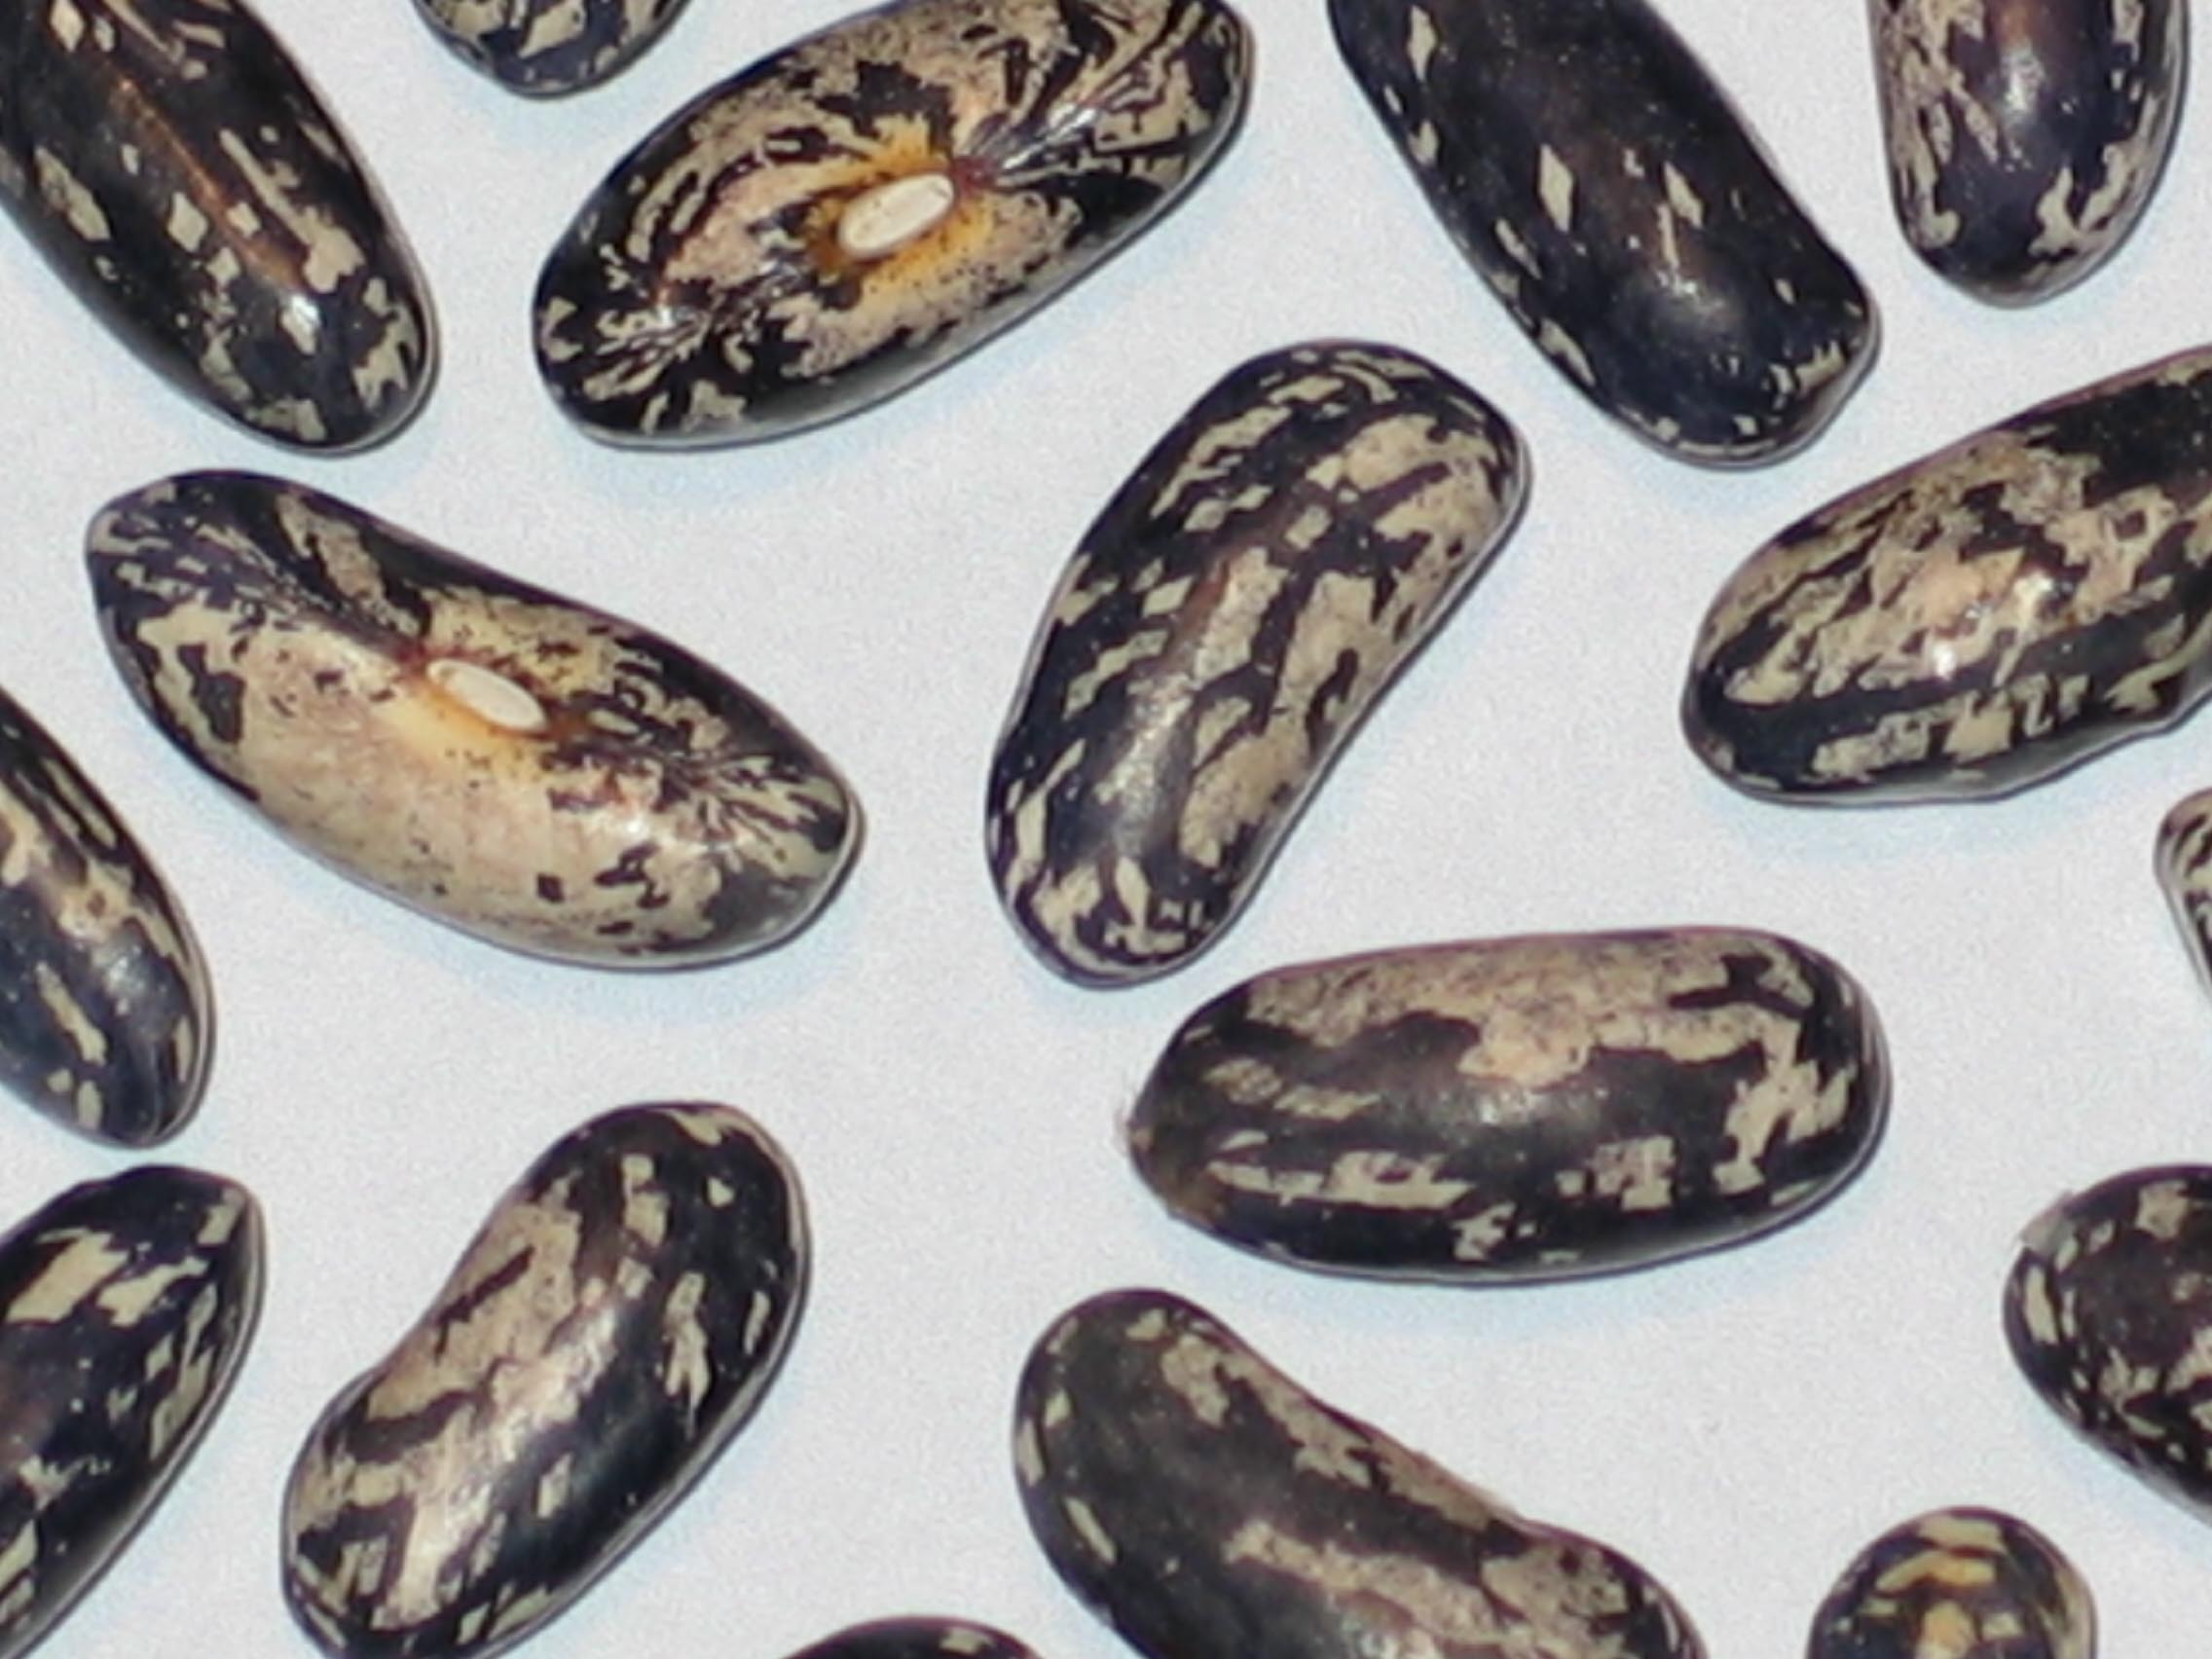 image of Bountiful Ester beans